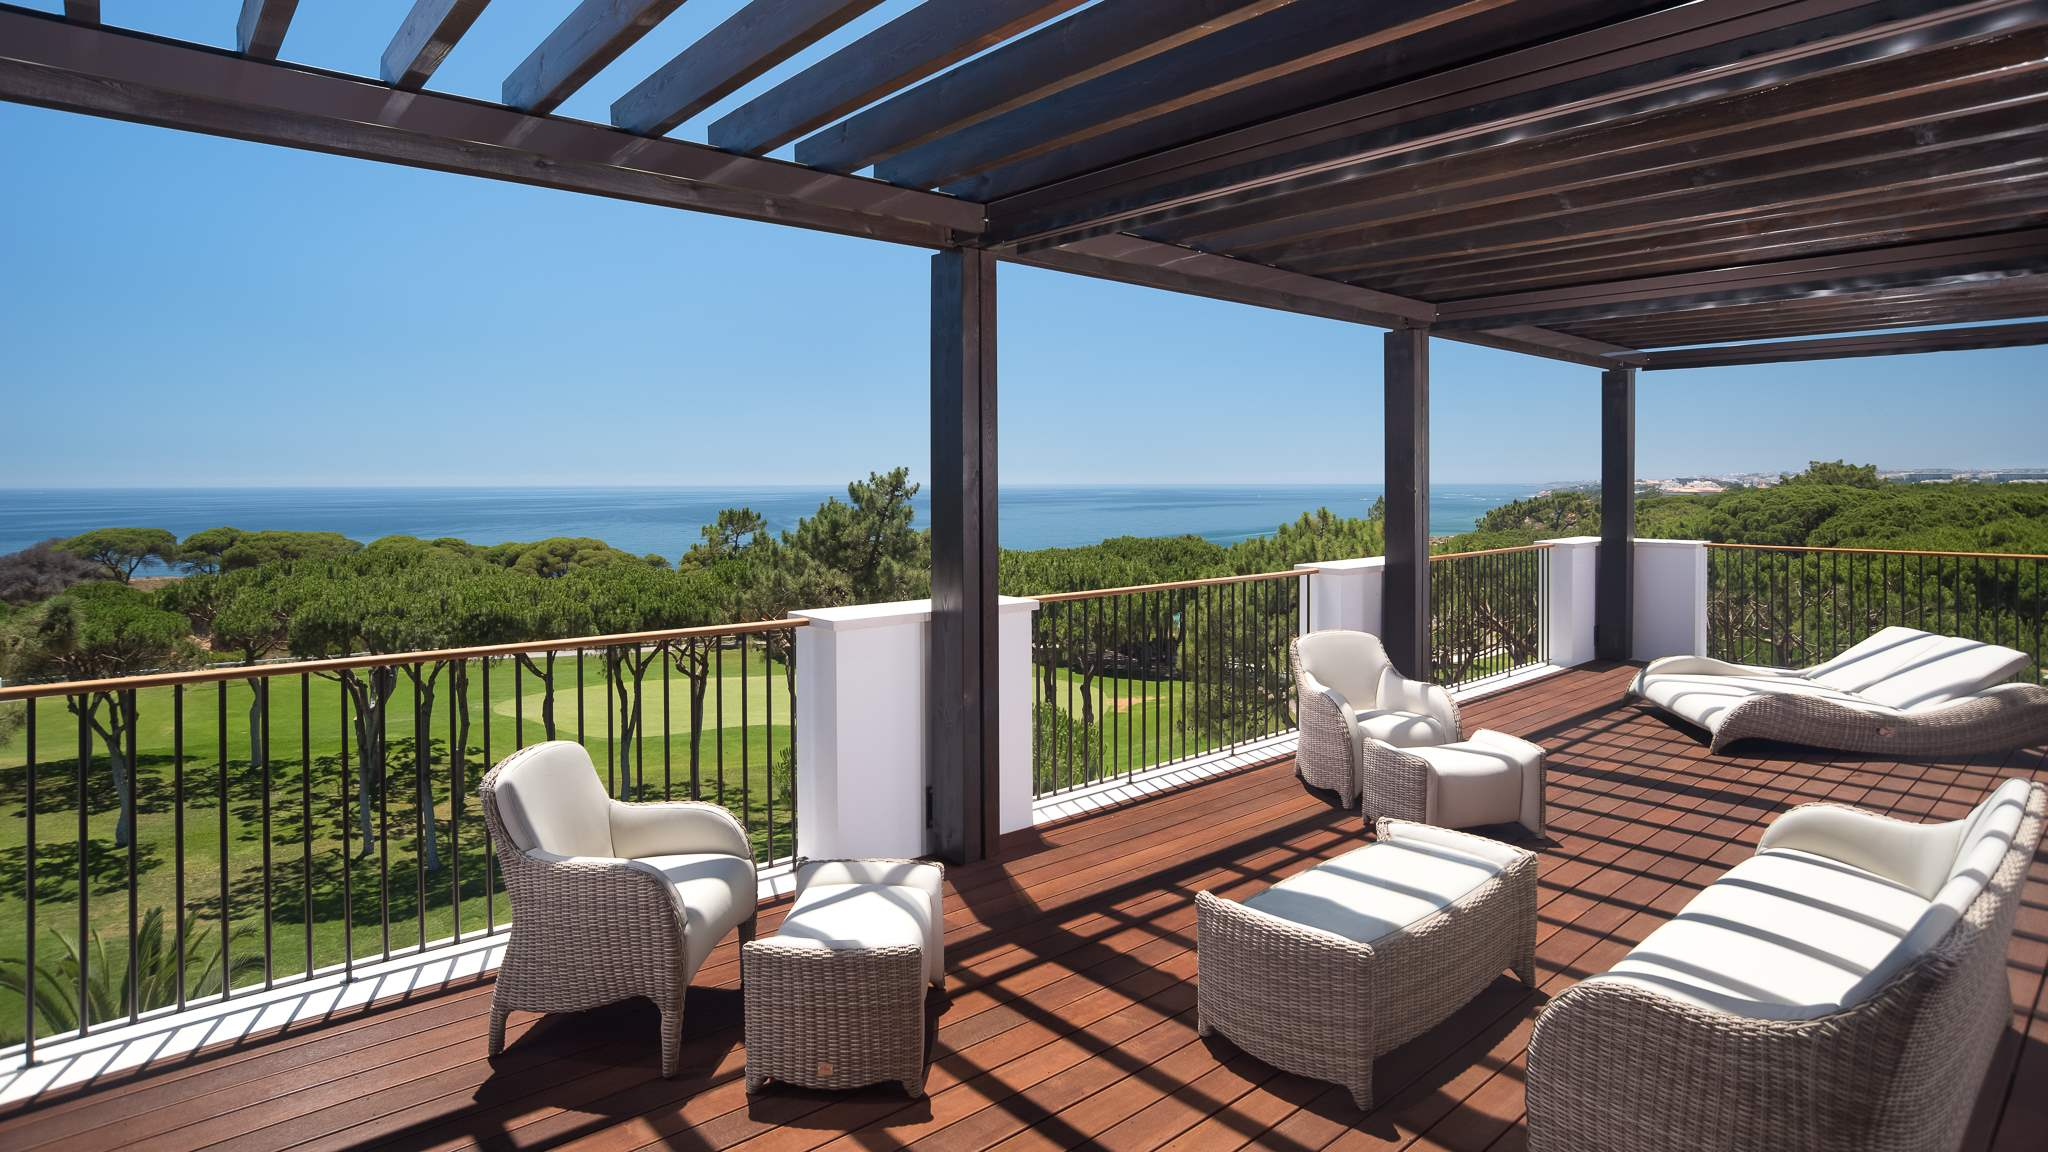 Pine Cliffs Ocean Suites, Two Bedroom Apt, Garden Access, 2 bedroom apartment in Pine Cliffs Resort, Algarve Photo #10